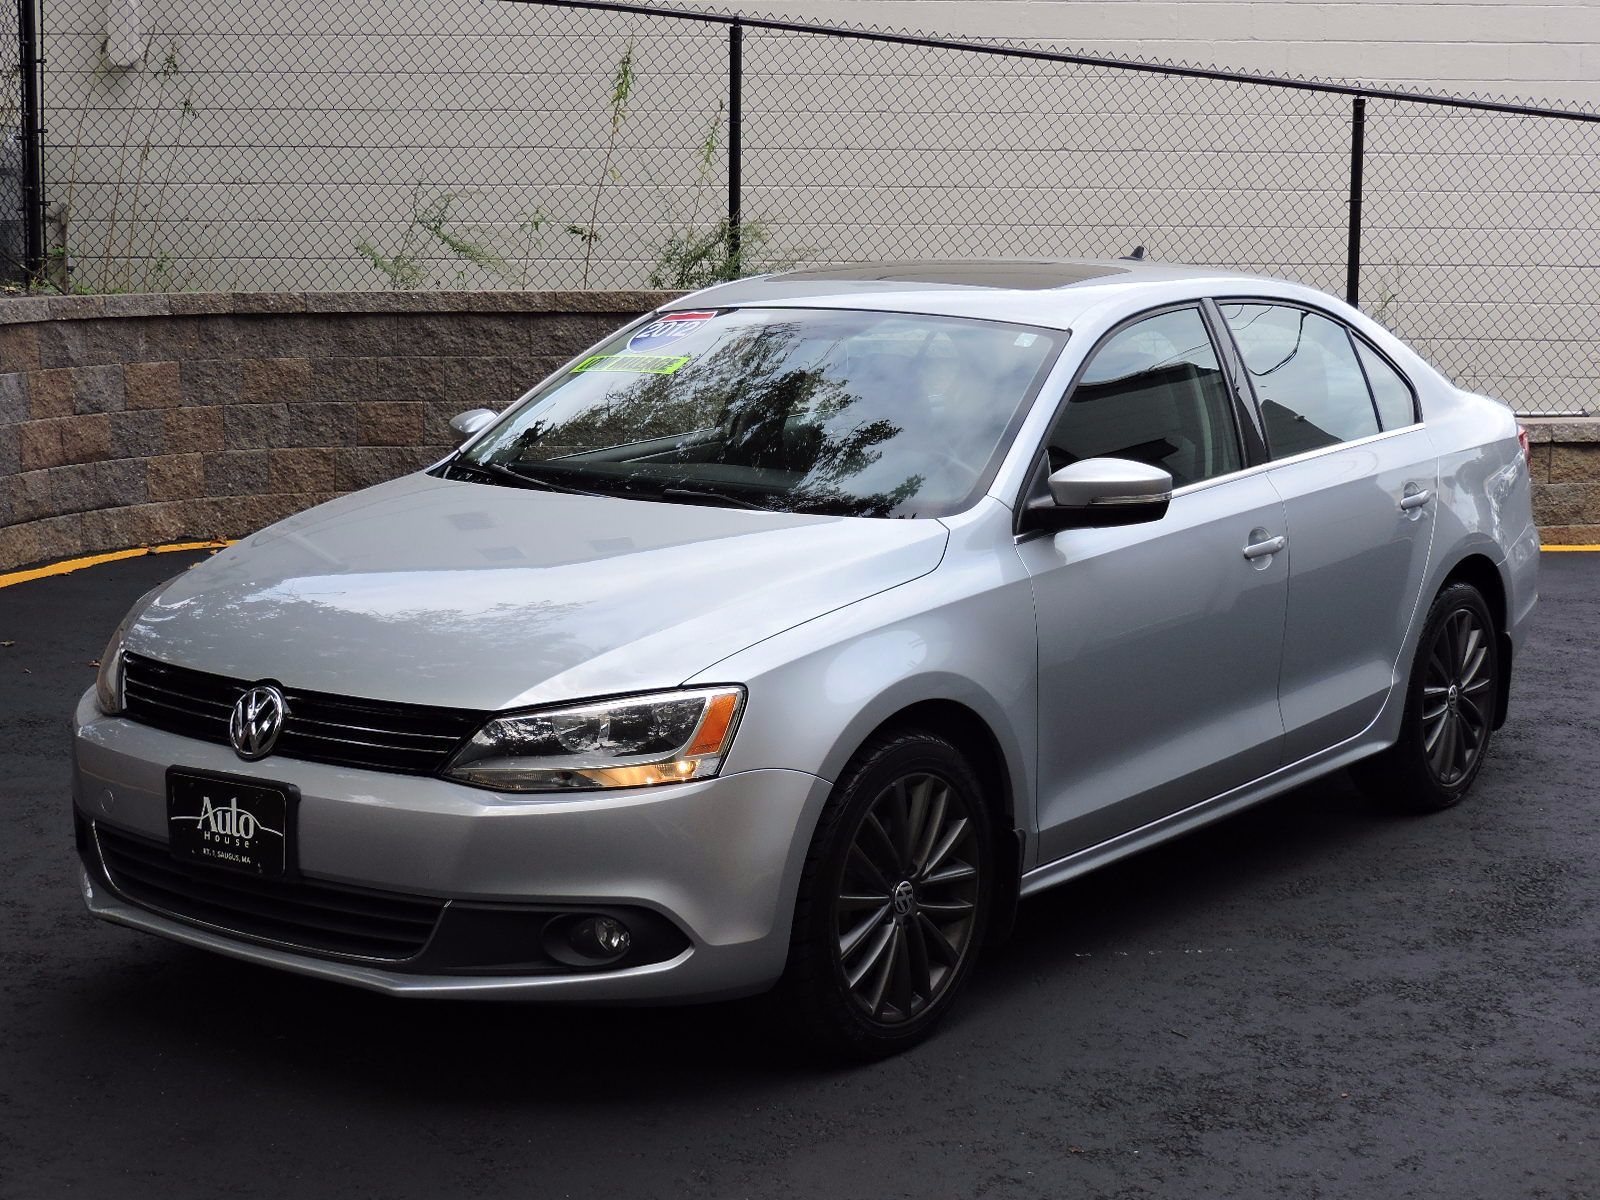 used 2012 volkswagen jetta sel wsunroof pzev at auto house. Black Bedroom Furniture Sets. Home Design Ideas